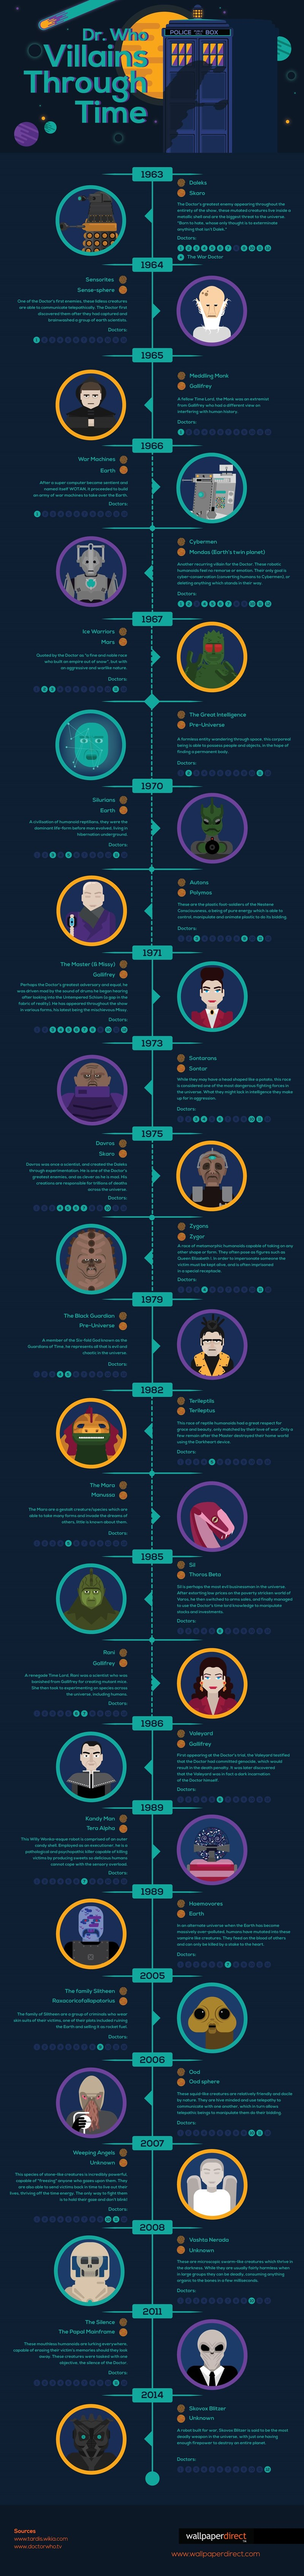 villains doctor who infographic - 8565748224